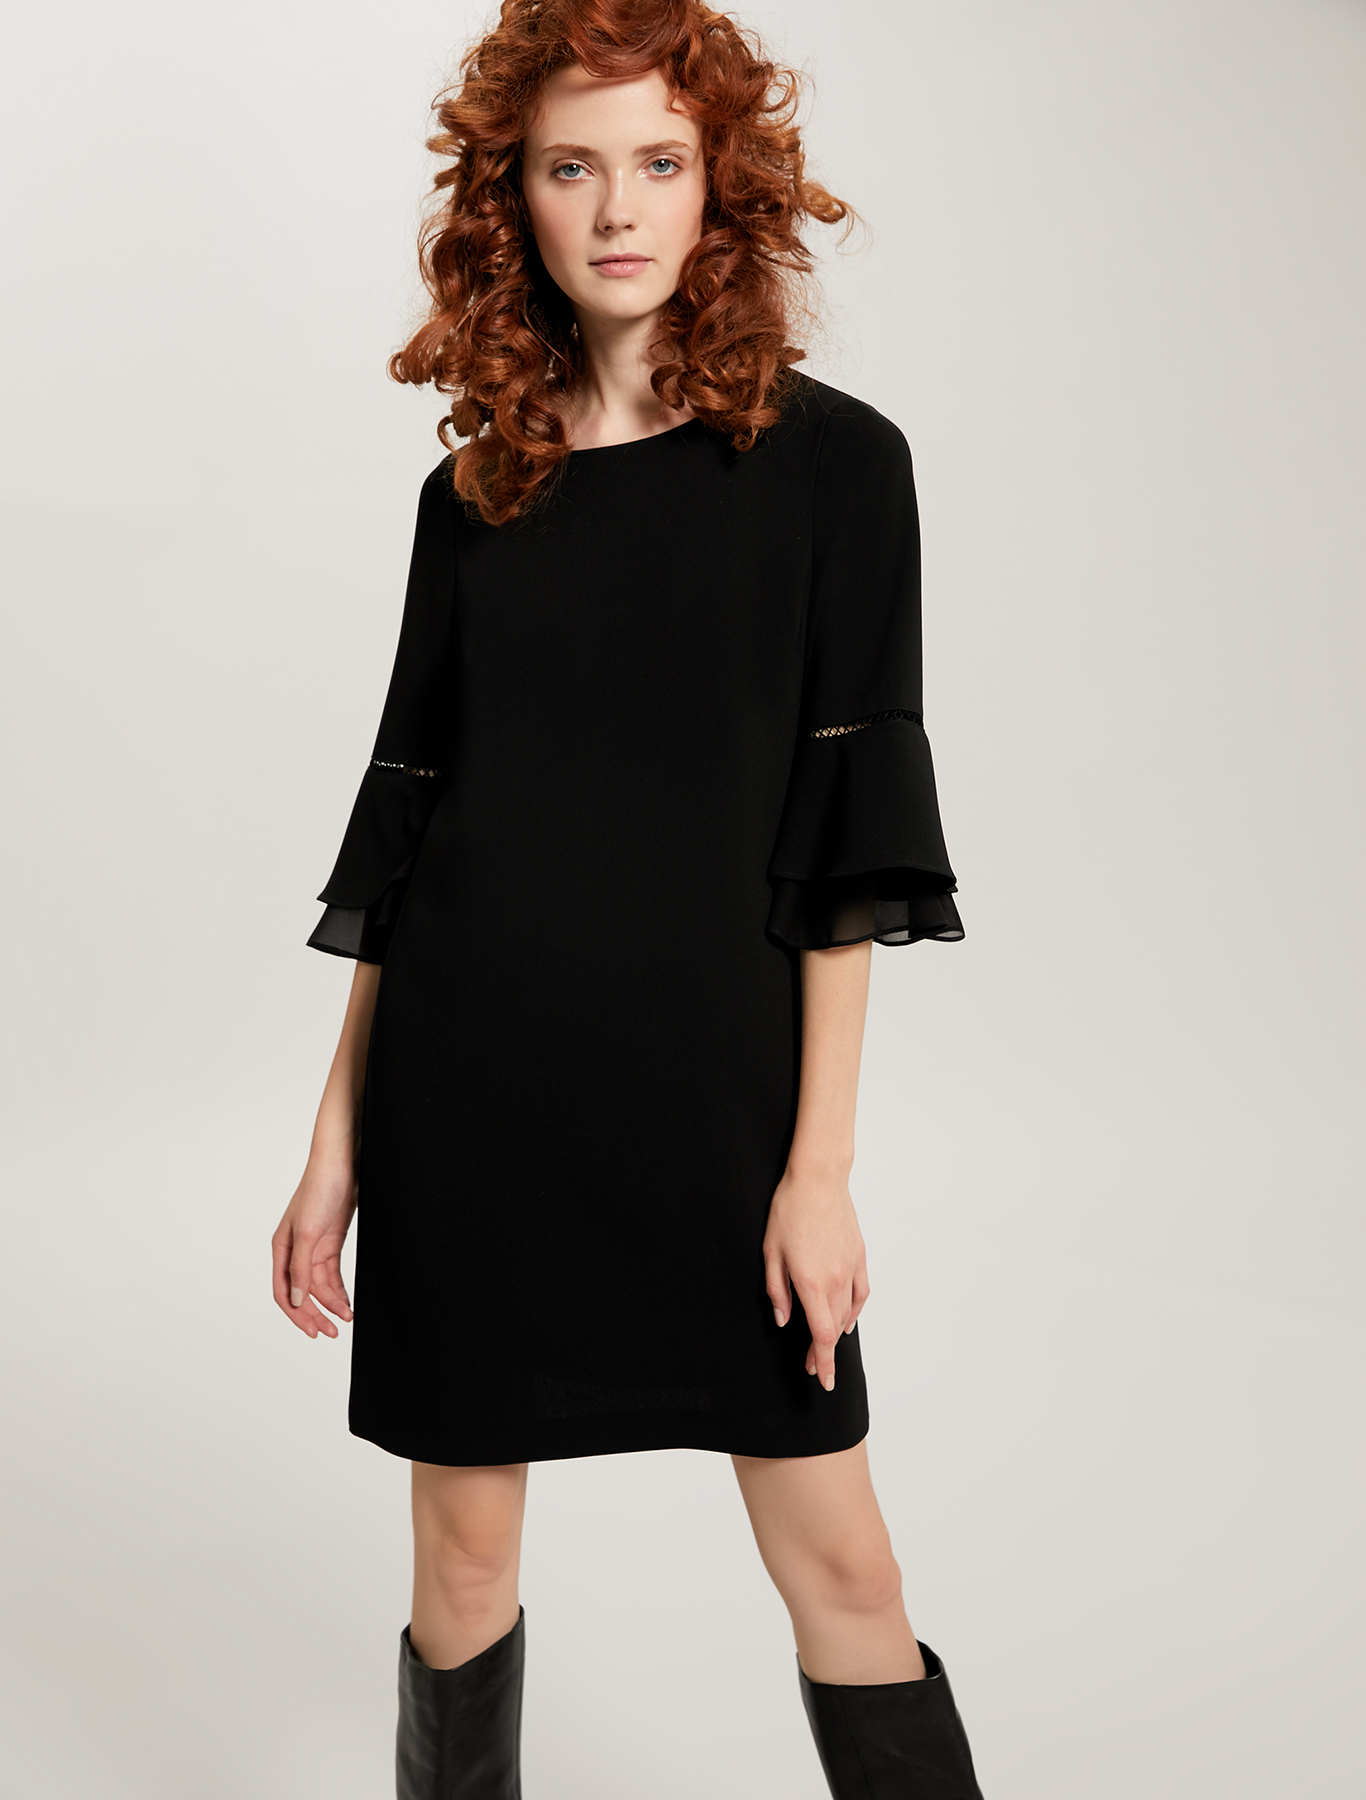 Dress with openwork and ruffles - black - pennyblack